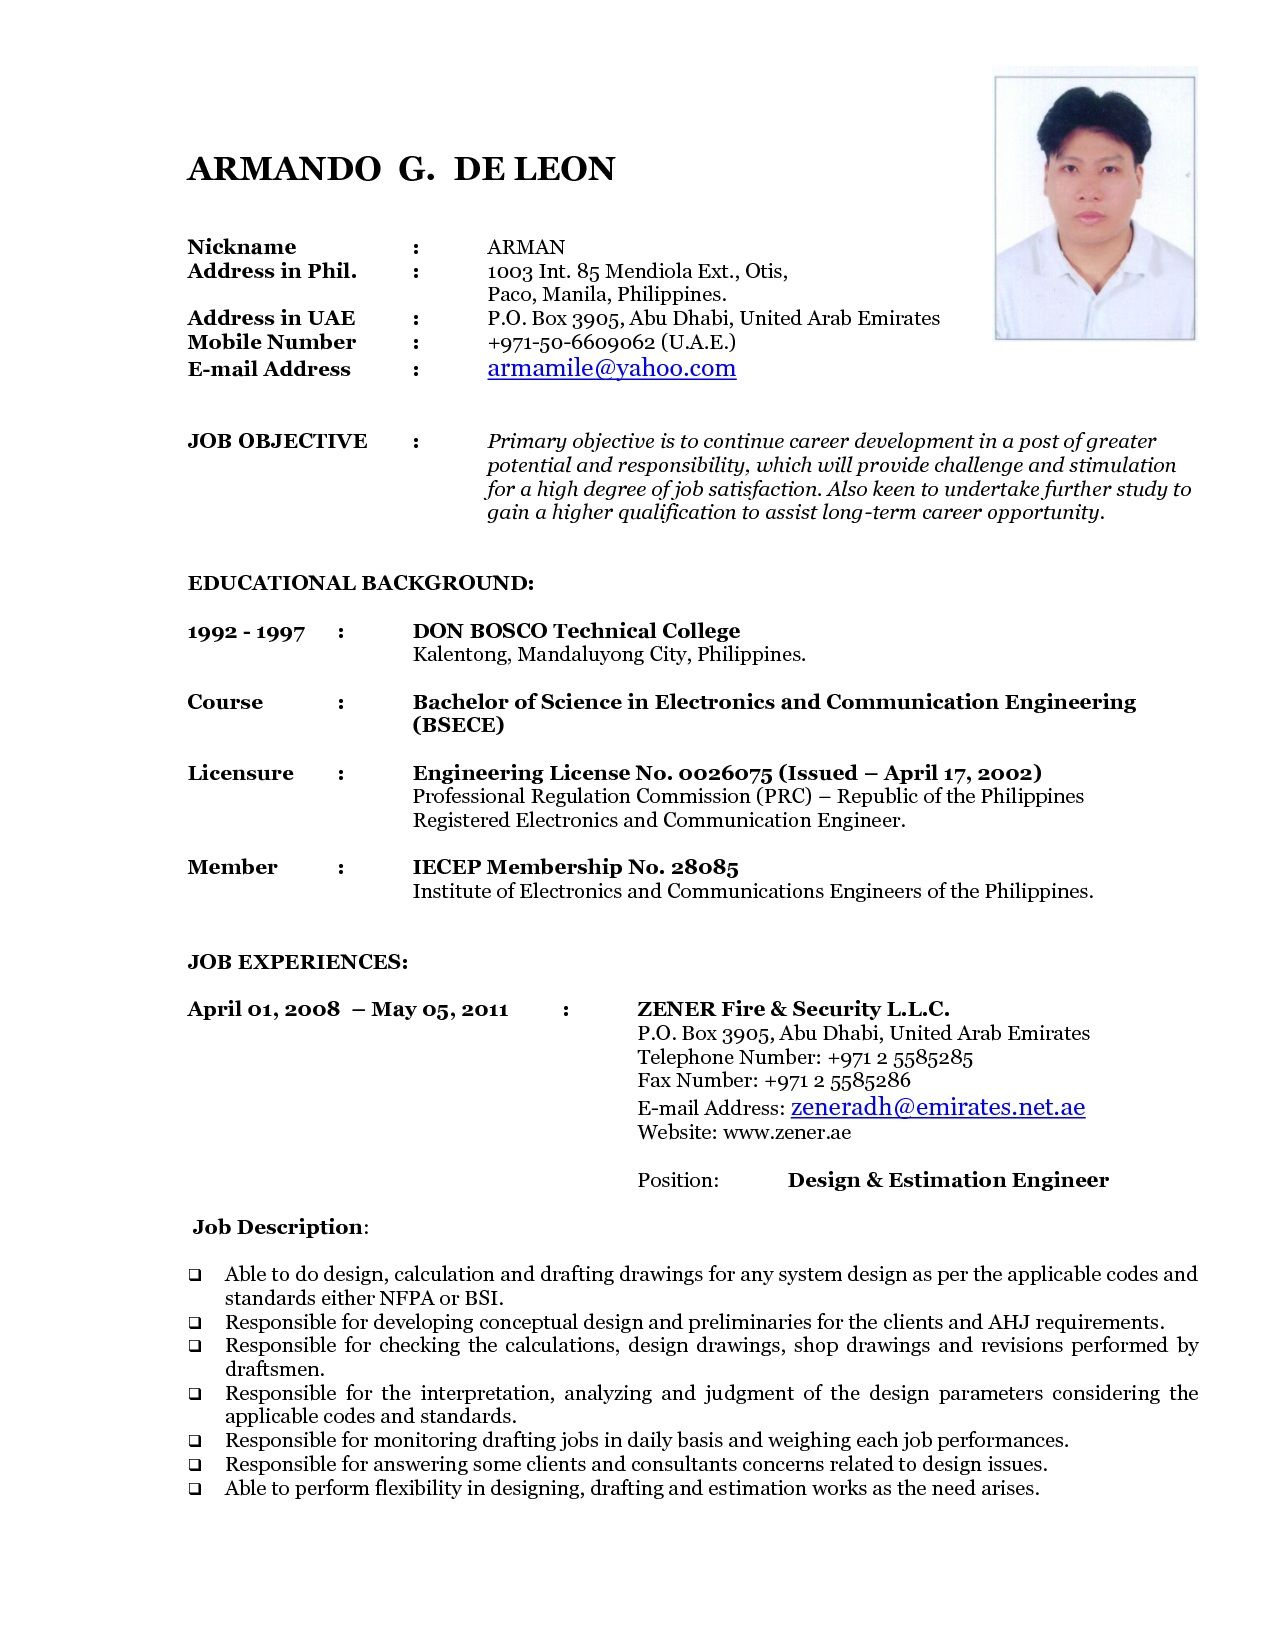 Updated Resume Format 2015 - Updated Resume Format 2015 will give ...